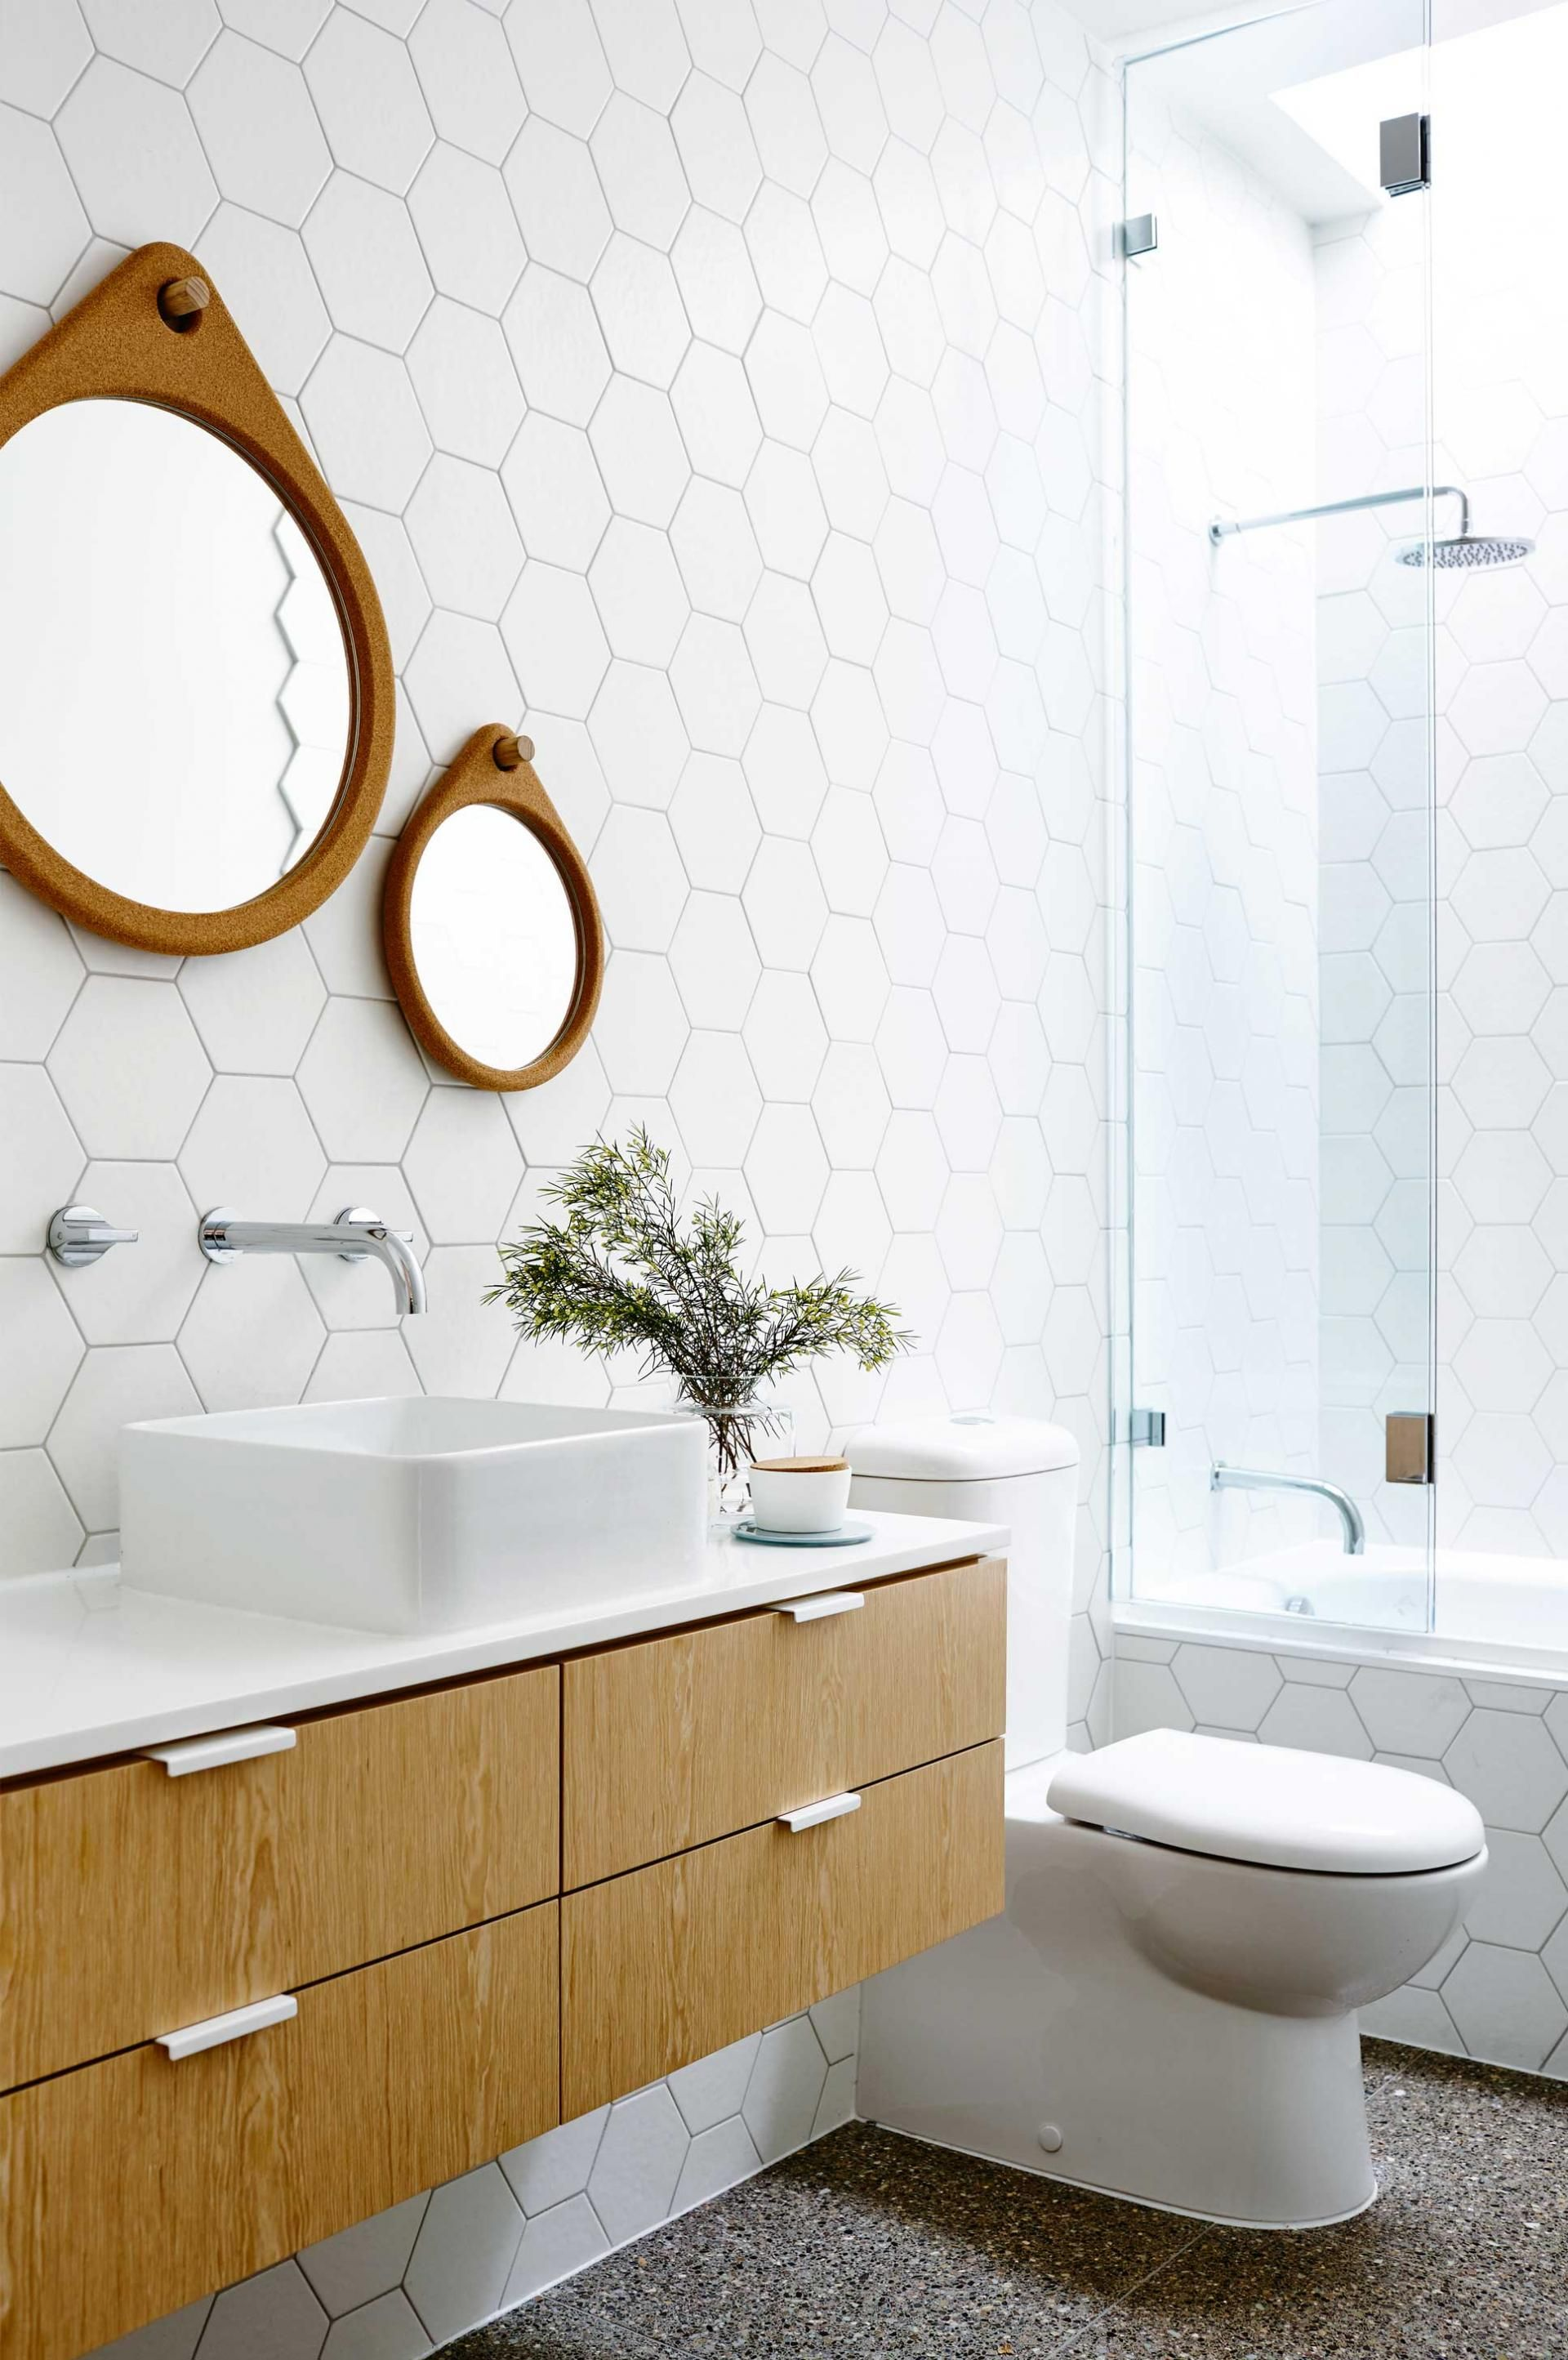 vexed hexagon by floor tiles tile bathroom kitchen mosaic cement feature black